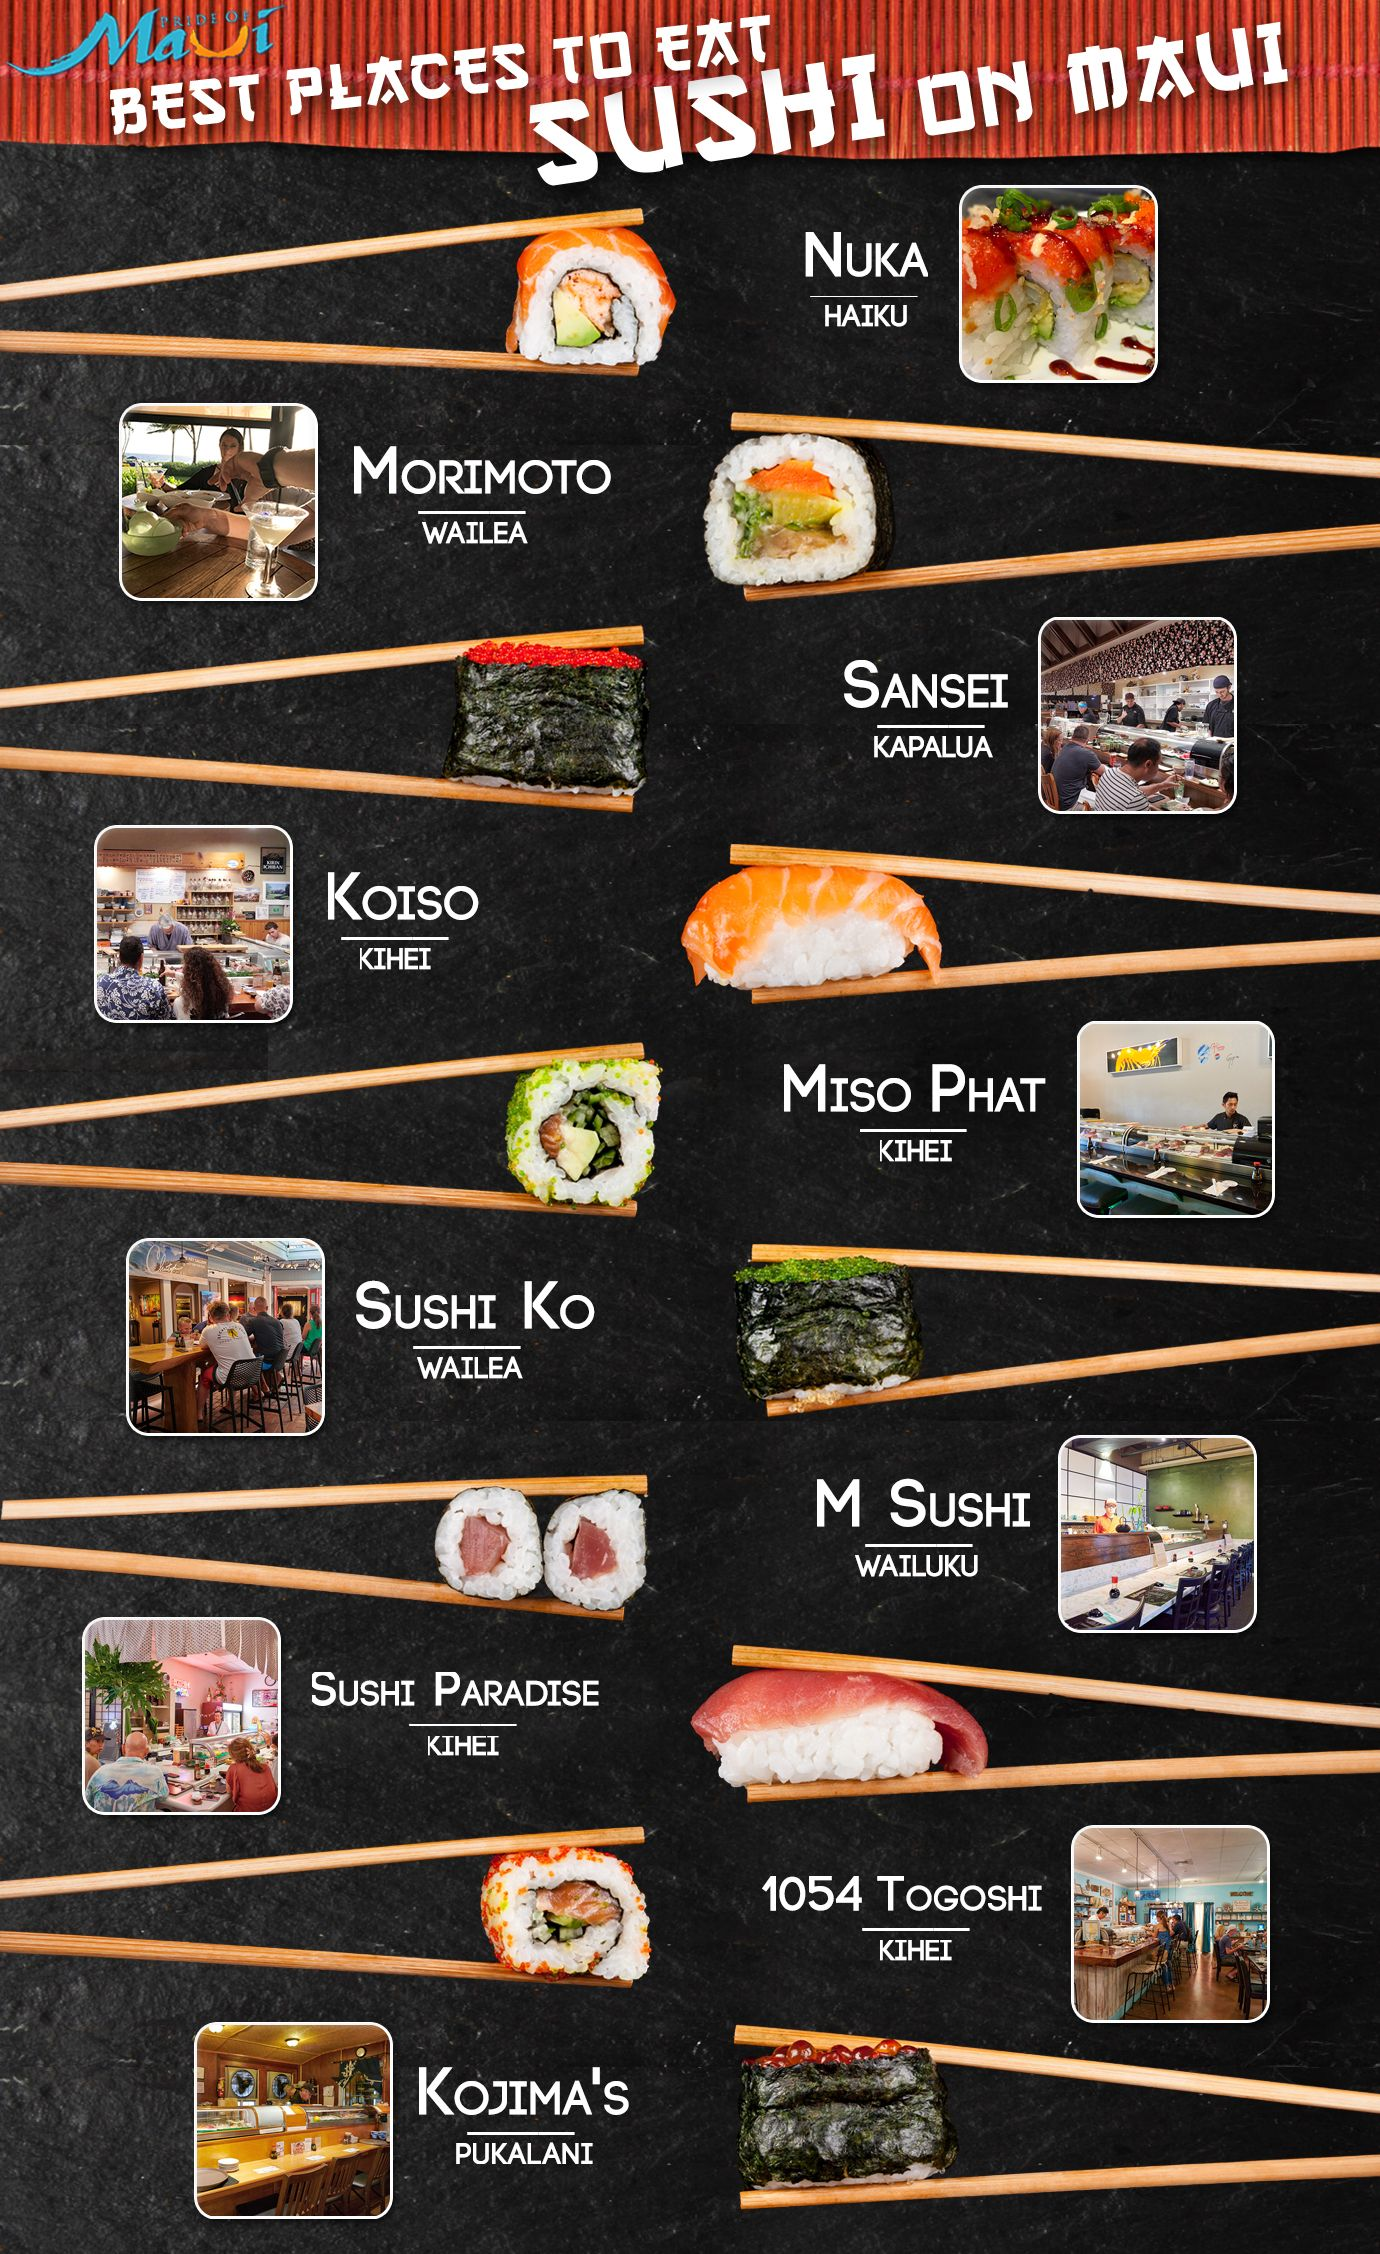 Top 10 Maui Sushi Restaurants Sushi Restaurants Sushi Menu Food Menu Design